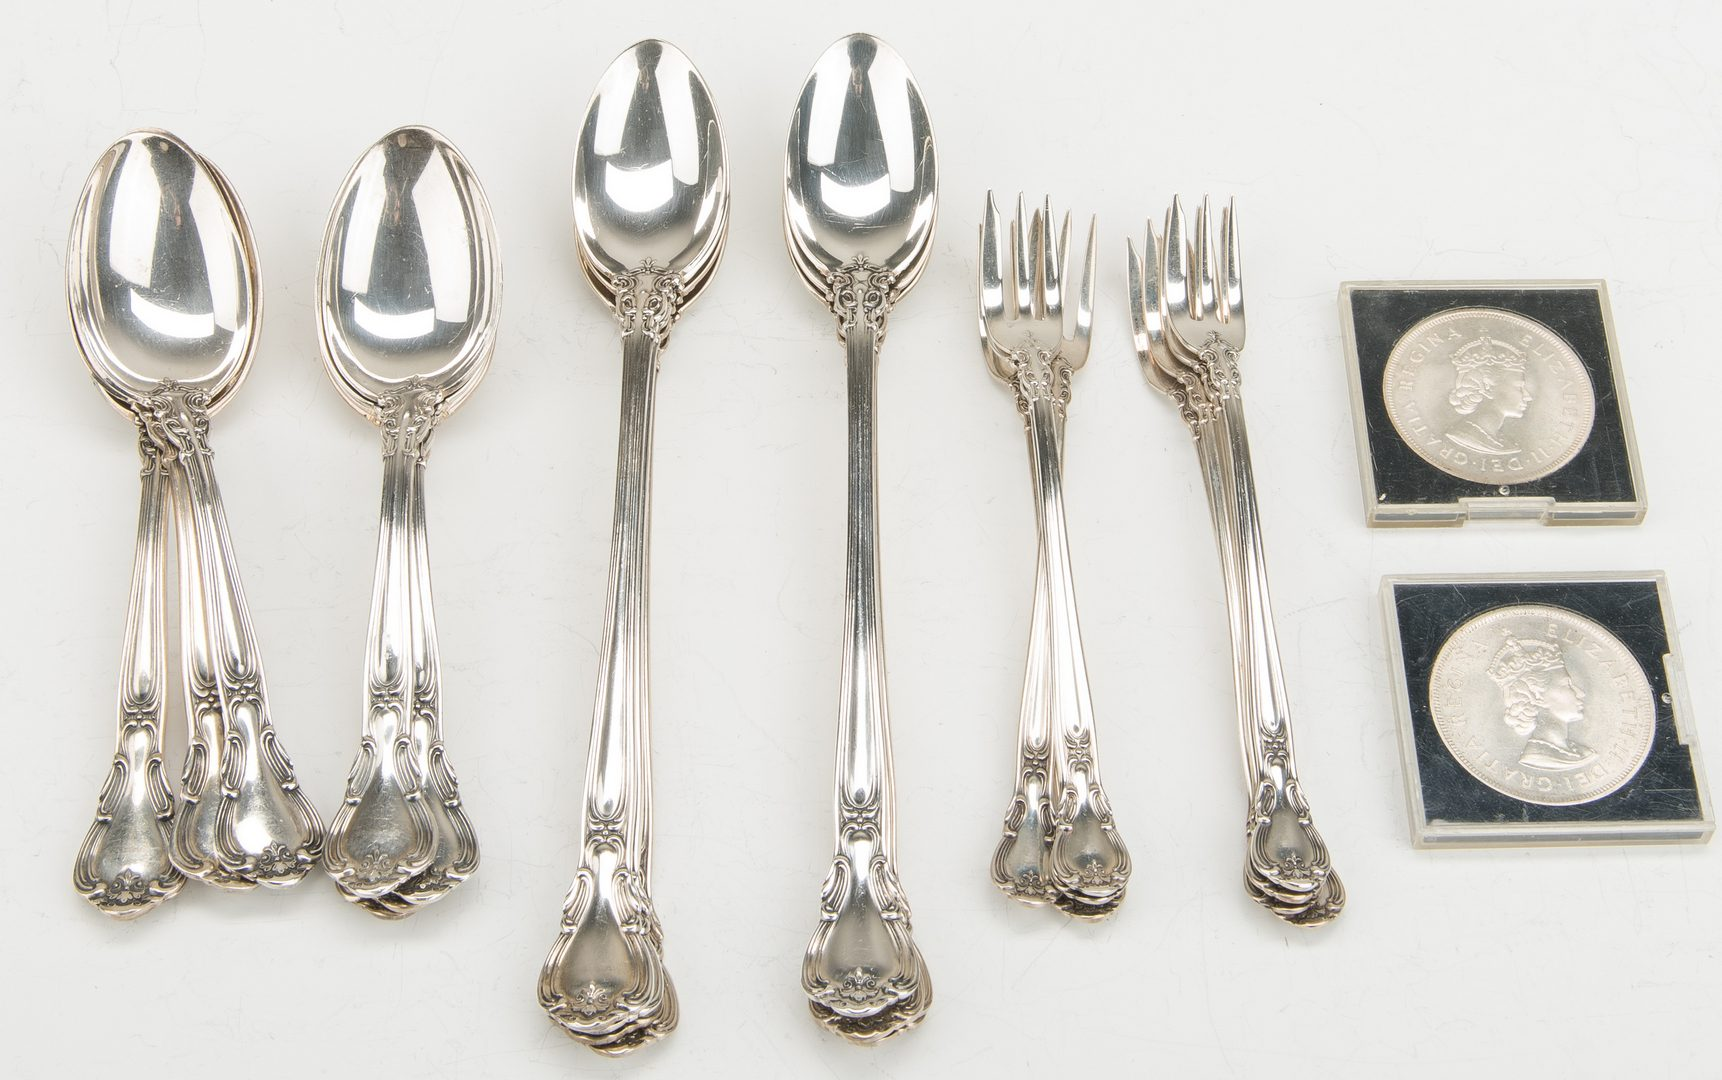 Lot 869: 24 Gorham Chantilly Sterling Flatware & 2 silver coins